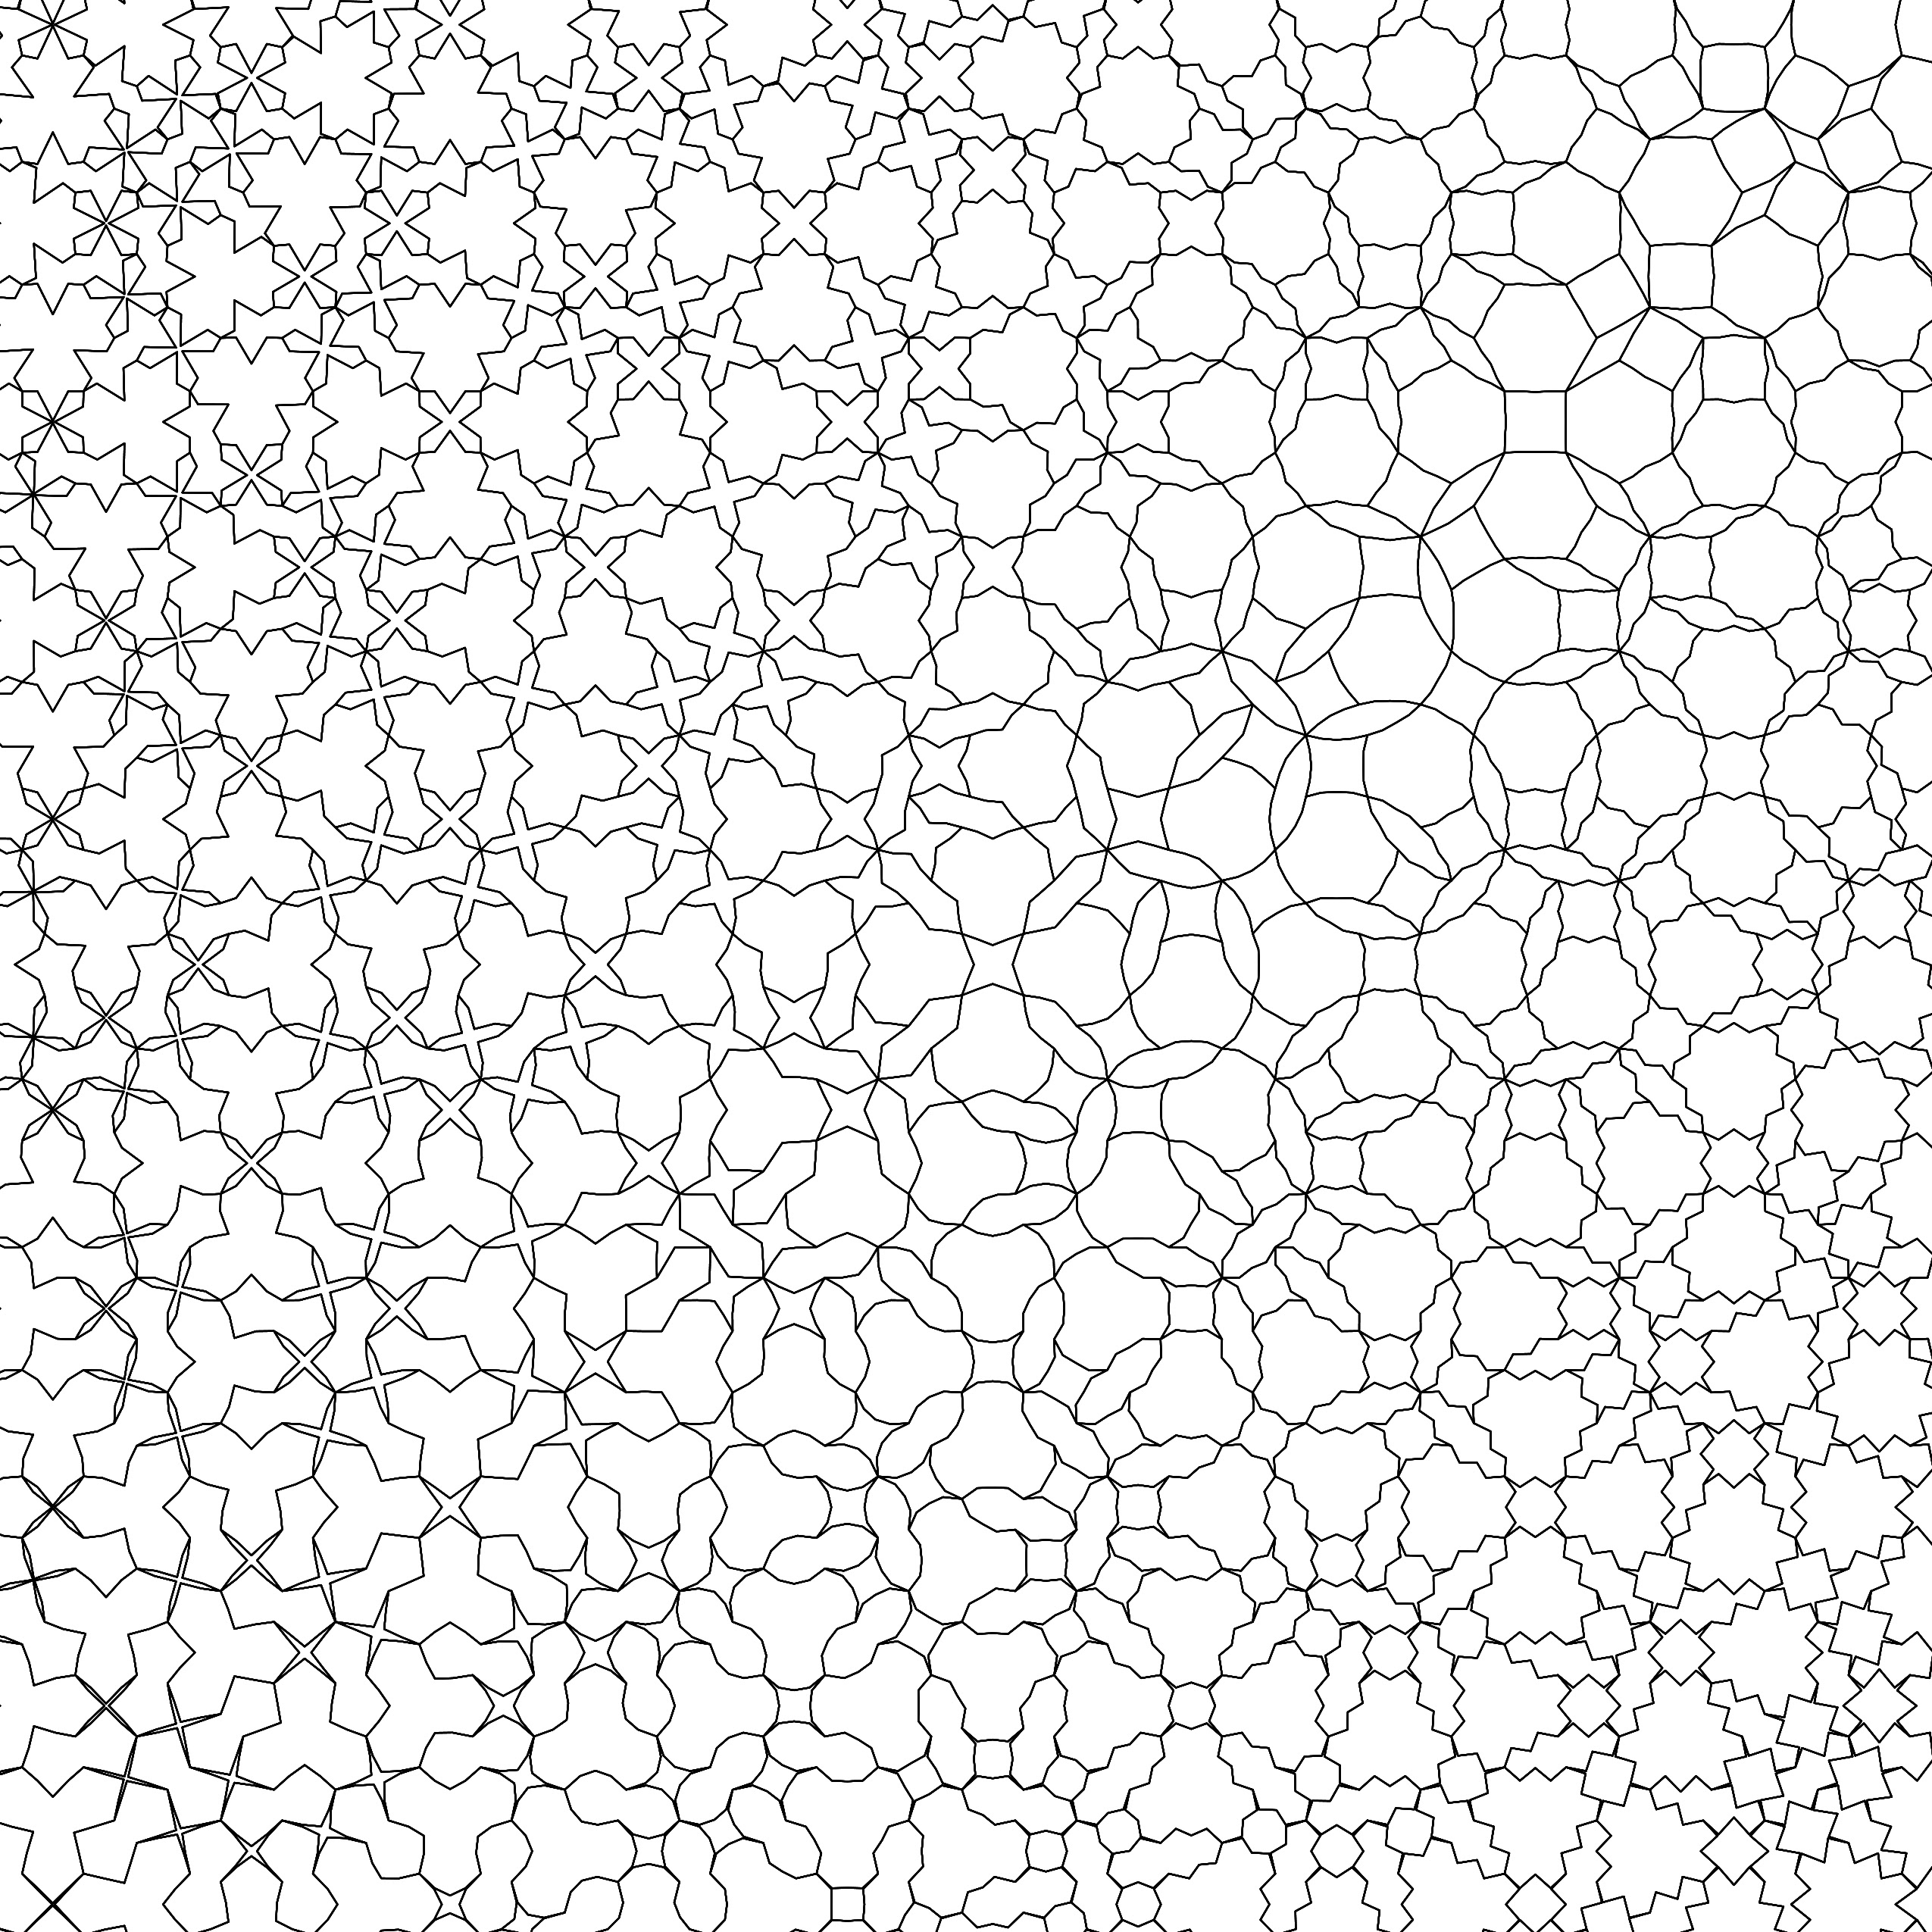 A deformation is a tiling in which the tiles slowly change while keeping the same underlying pattern. The earliest deformations, seen in the work of the Dutch mathematical artist M. C. Escher, morphed in a single dimension: from left to right, or from top to bottom. In this image, the deformation is two- dimensional. Edmund has created four different non-periodic tilings, one in each corner, that morph into each other from left to right and from top to bottom. Deformations are the nearest geometry gets to a